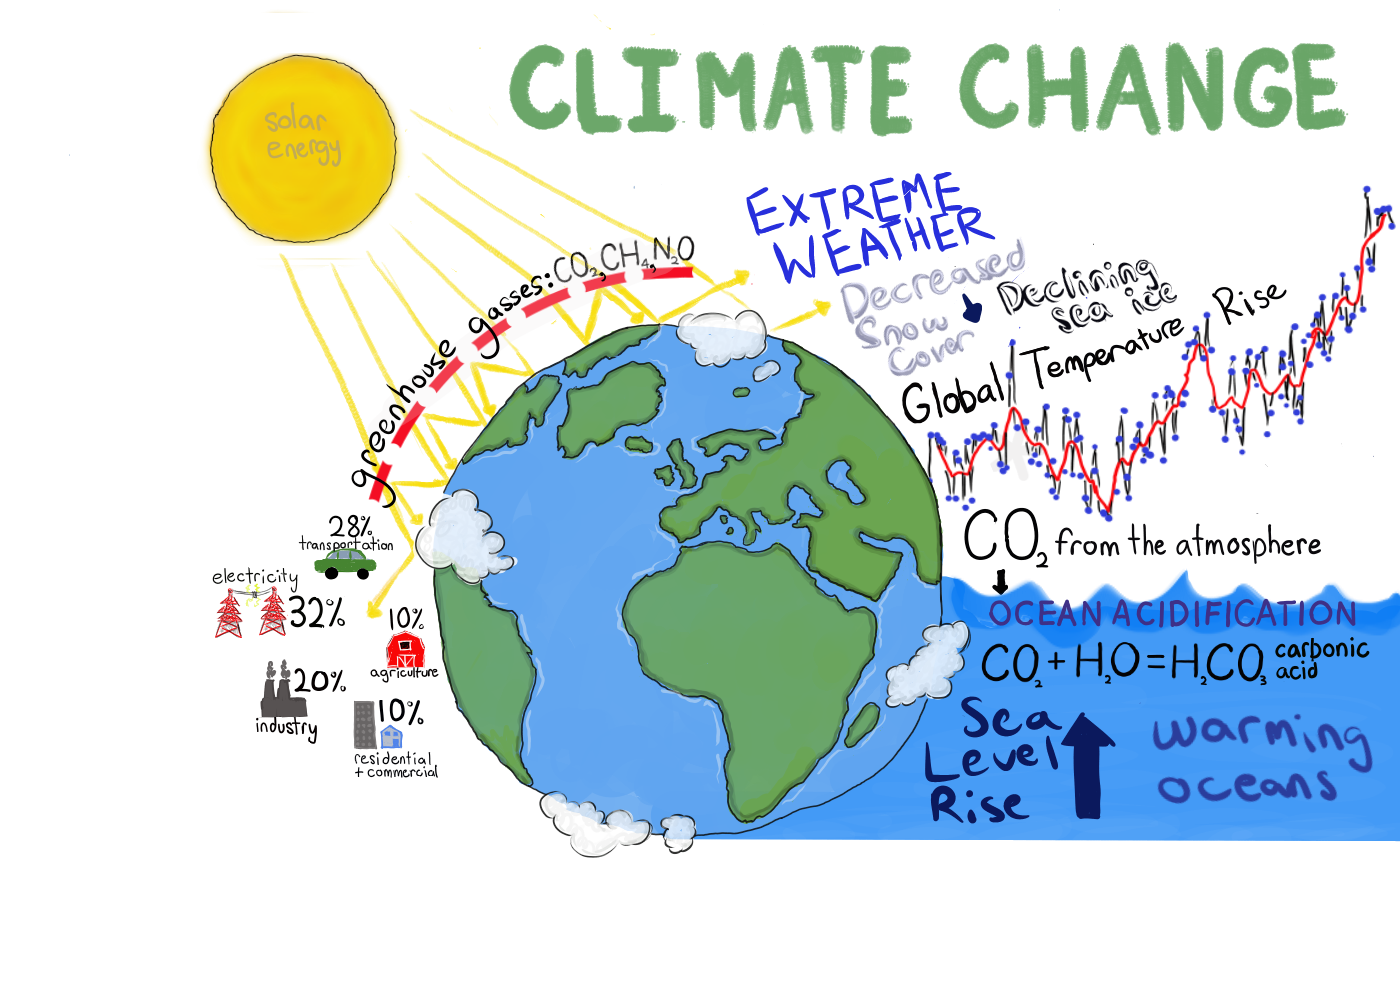 Climate+Change+has+both+environmental+and+economic+impacts.